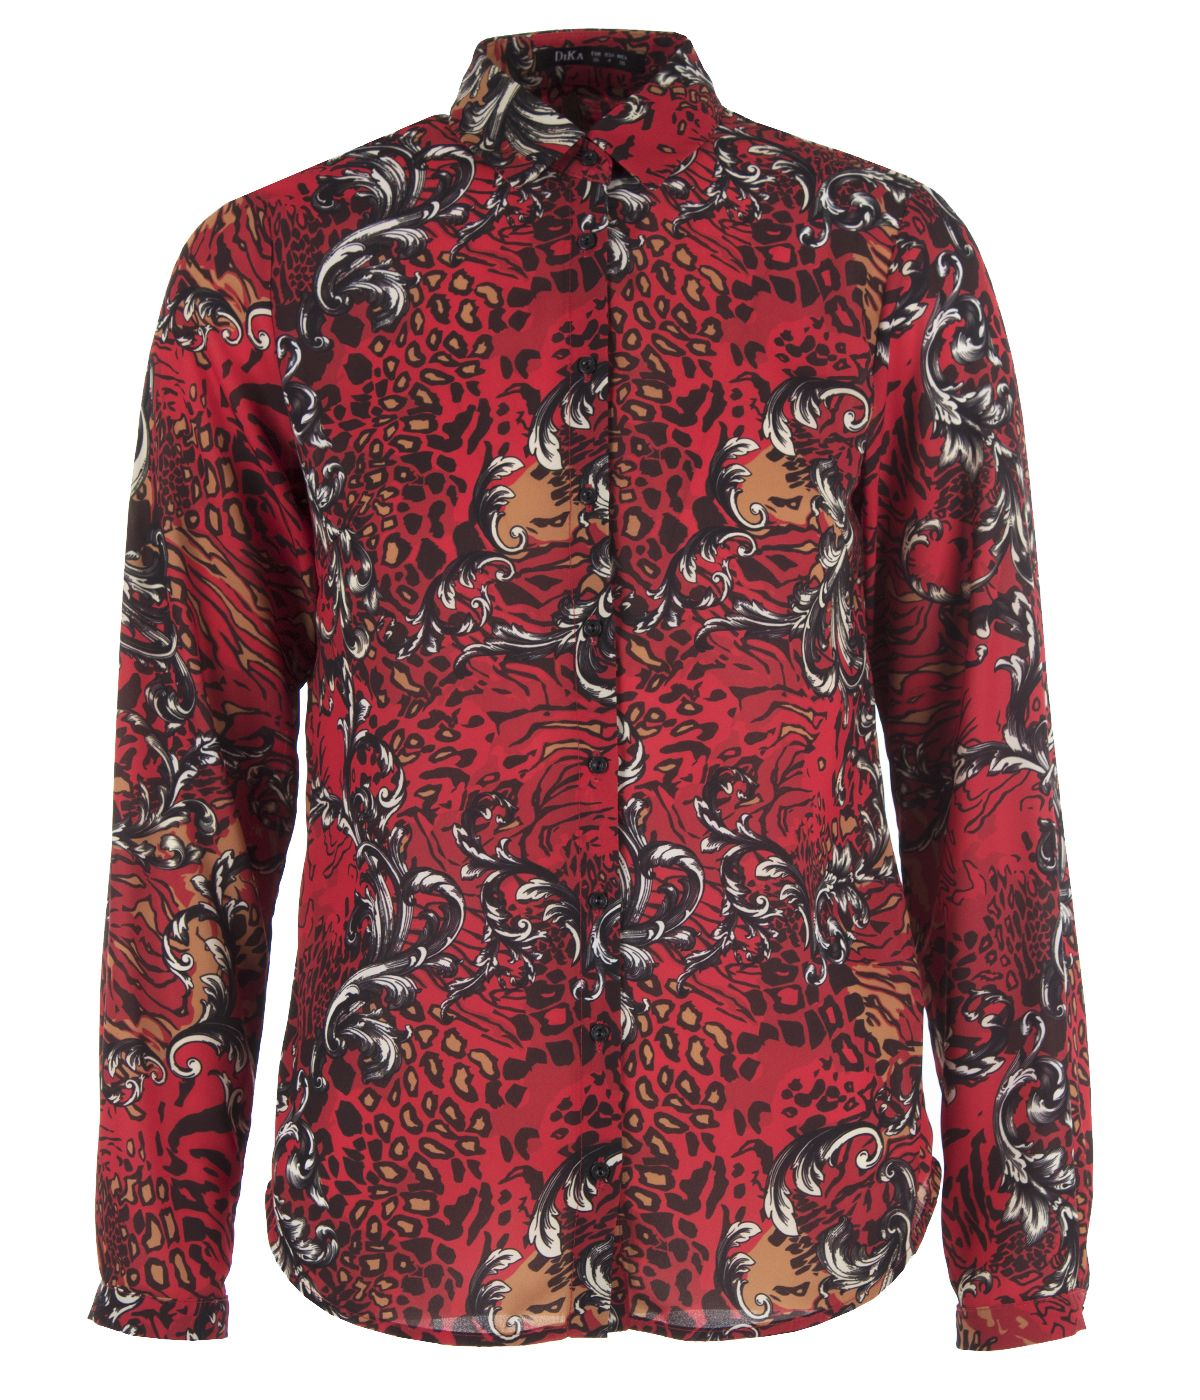 Long-sleeved shirt, animal print with decorative elements 0